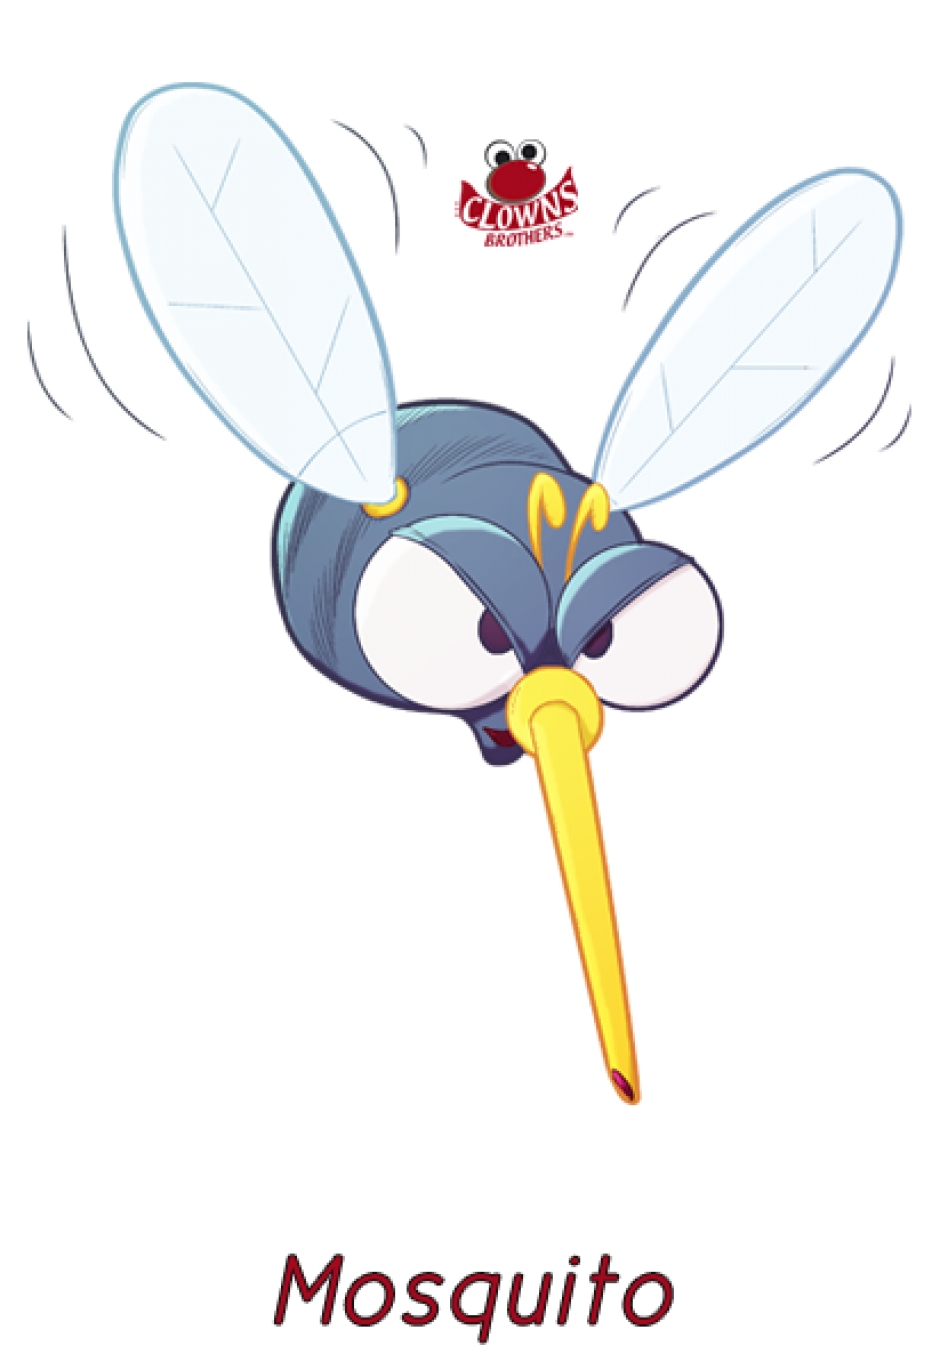 mosquito_large.png